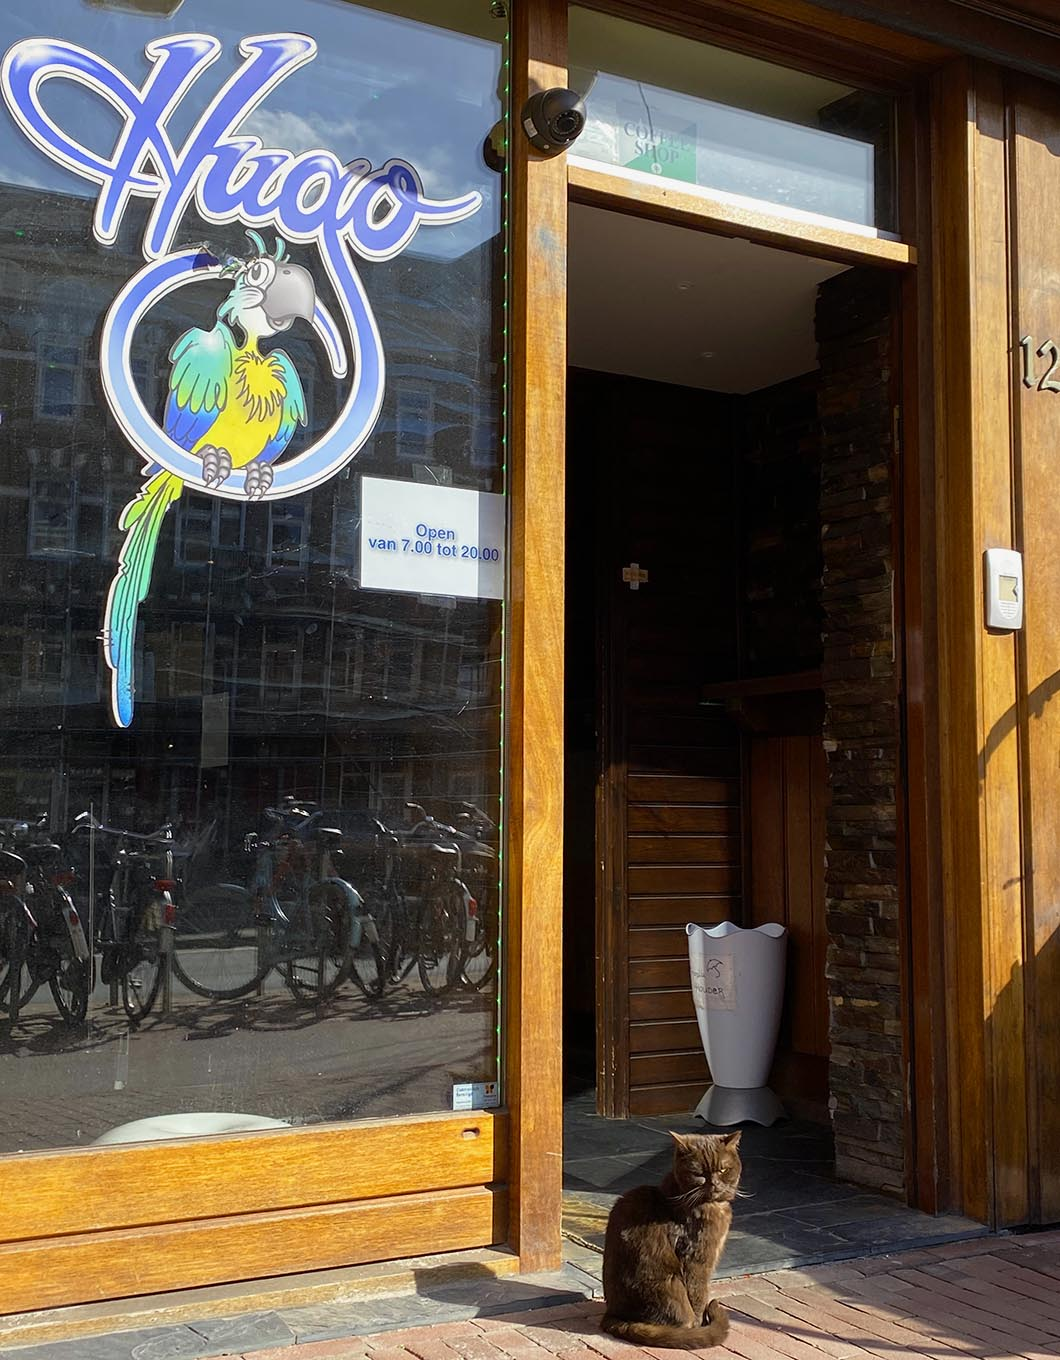 Entrance of the coffeeshop Hugo in Amsterdam and the cat Stoney